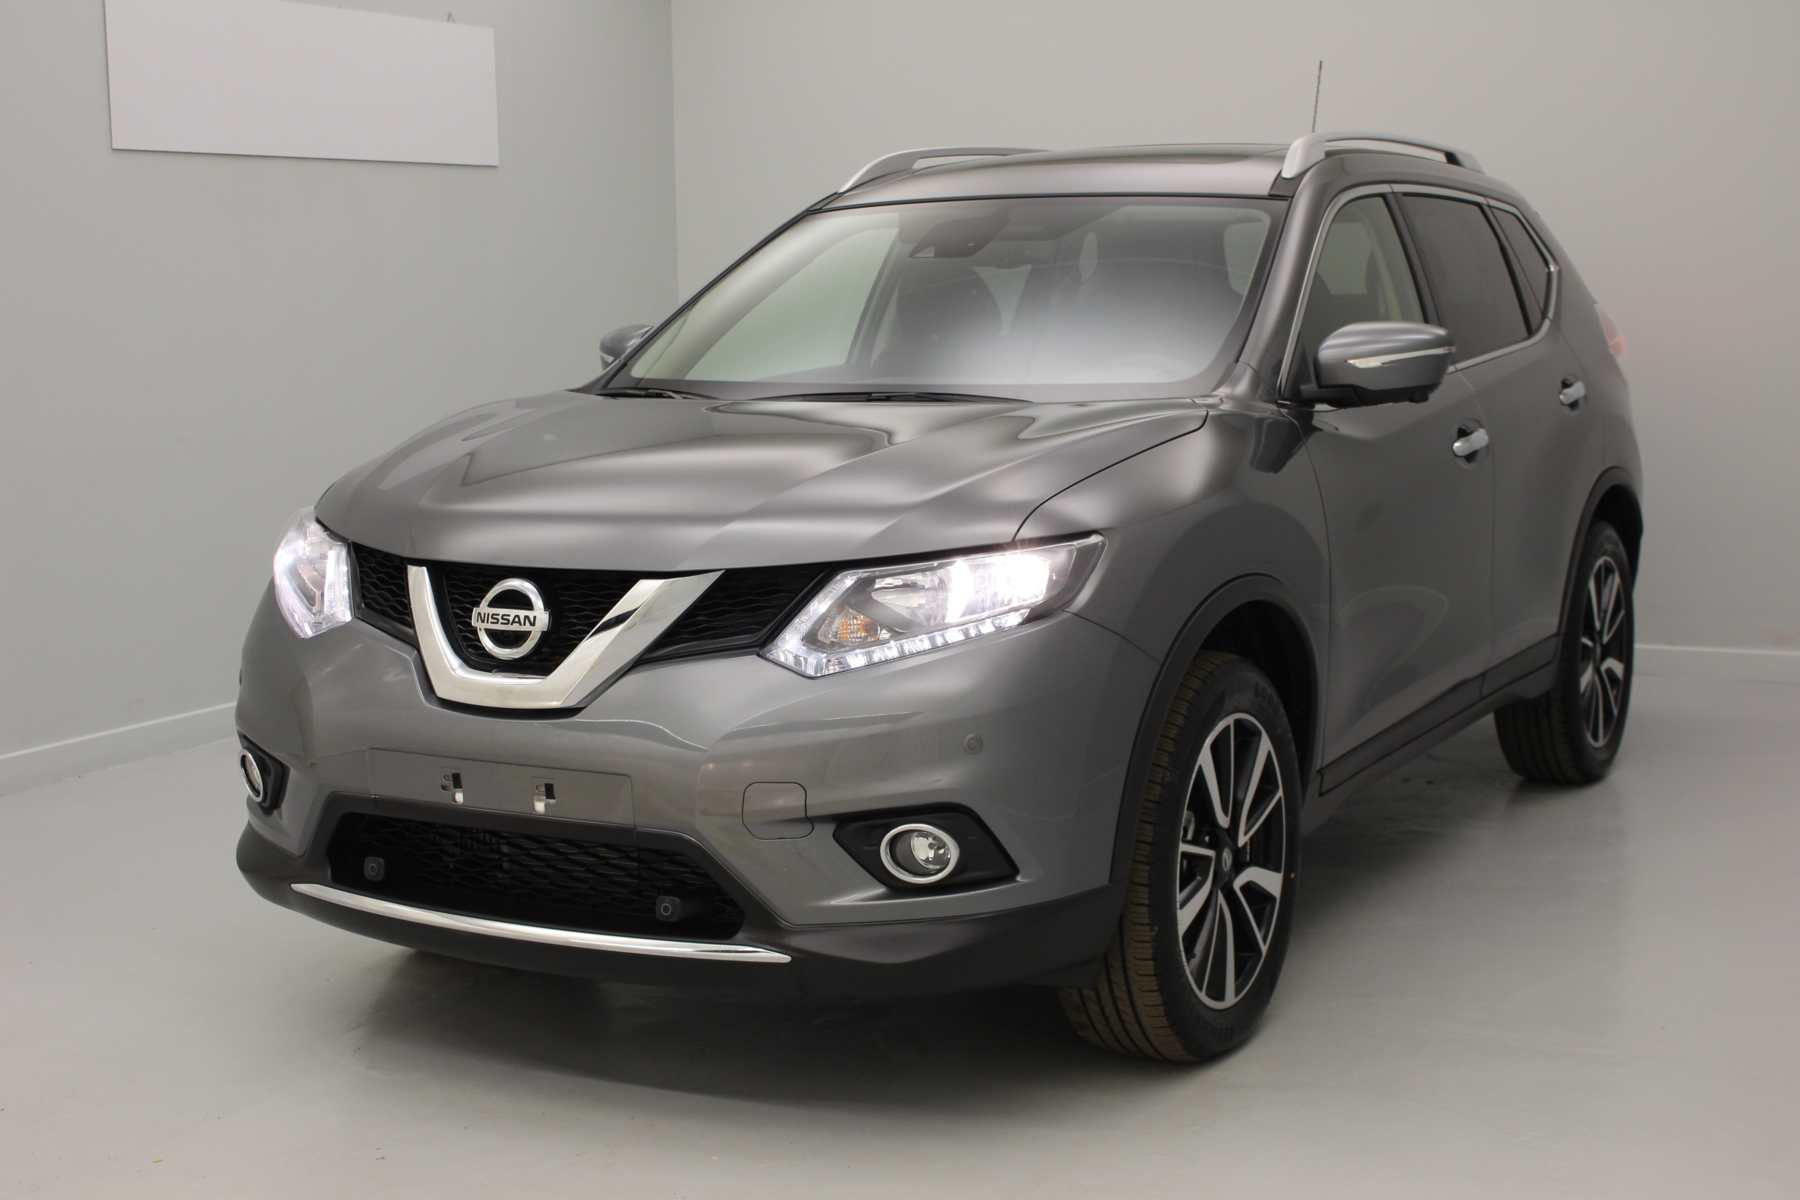 NISSAN X-Trail 1.6 dCi 130 Euro 6 5pl N-Connecta Gris Squale avec options